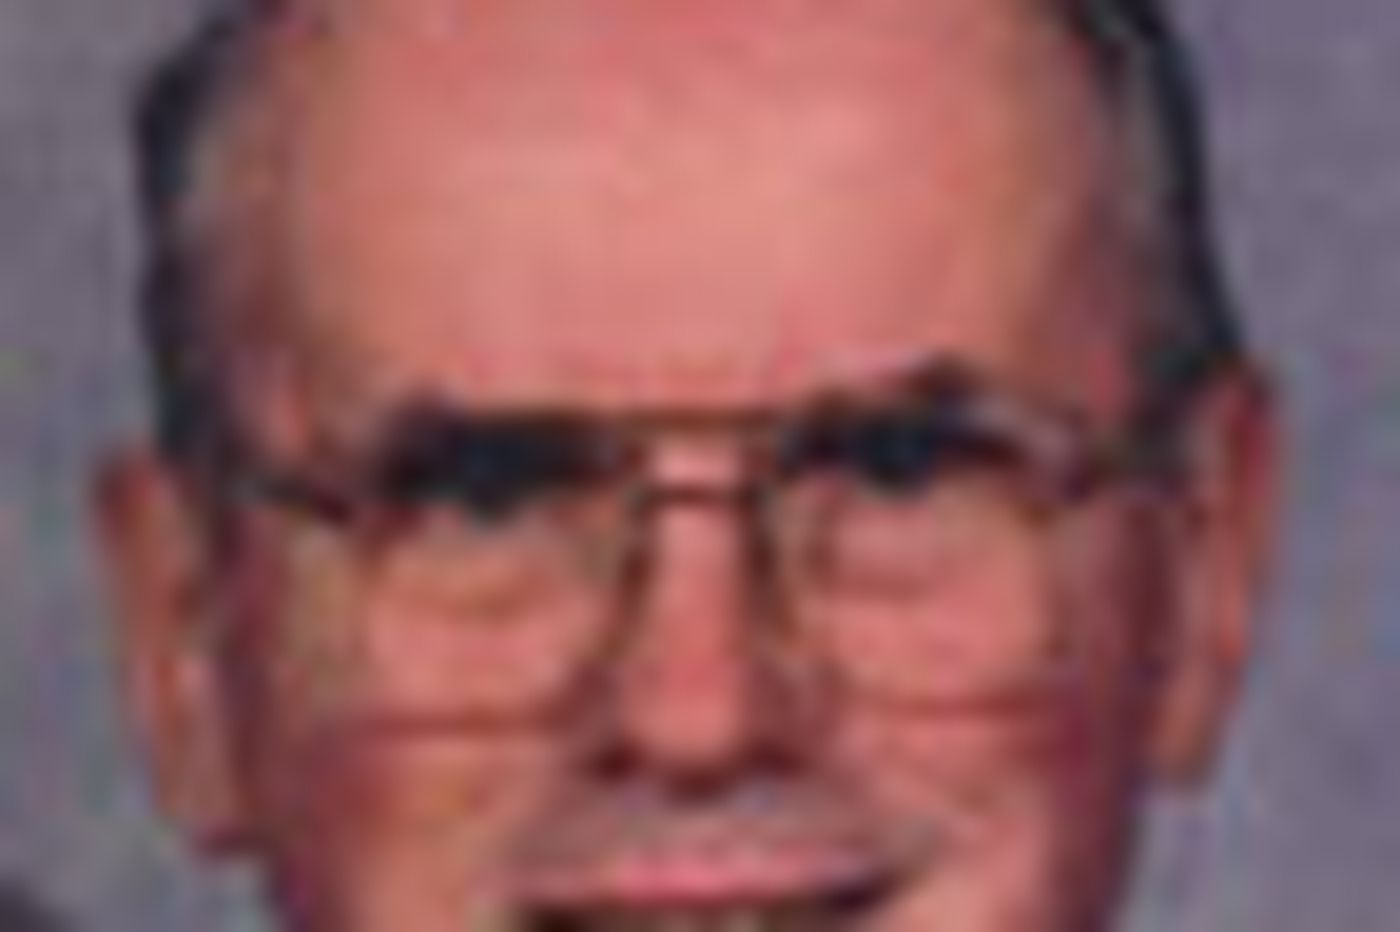 William Headley, 89, a retired executive with Provident Mutual Life Insurance